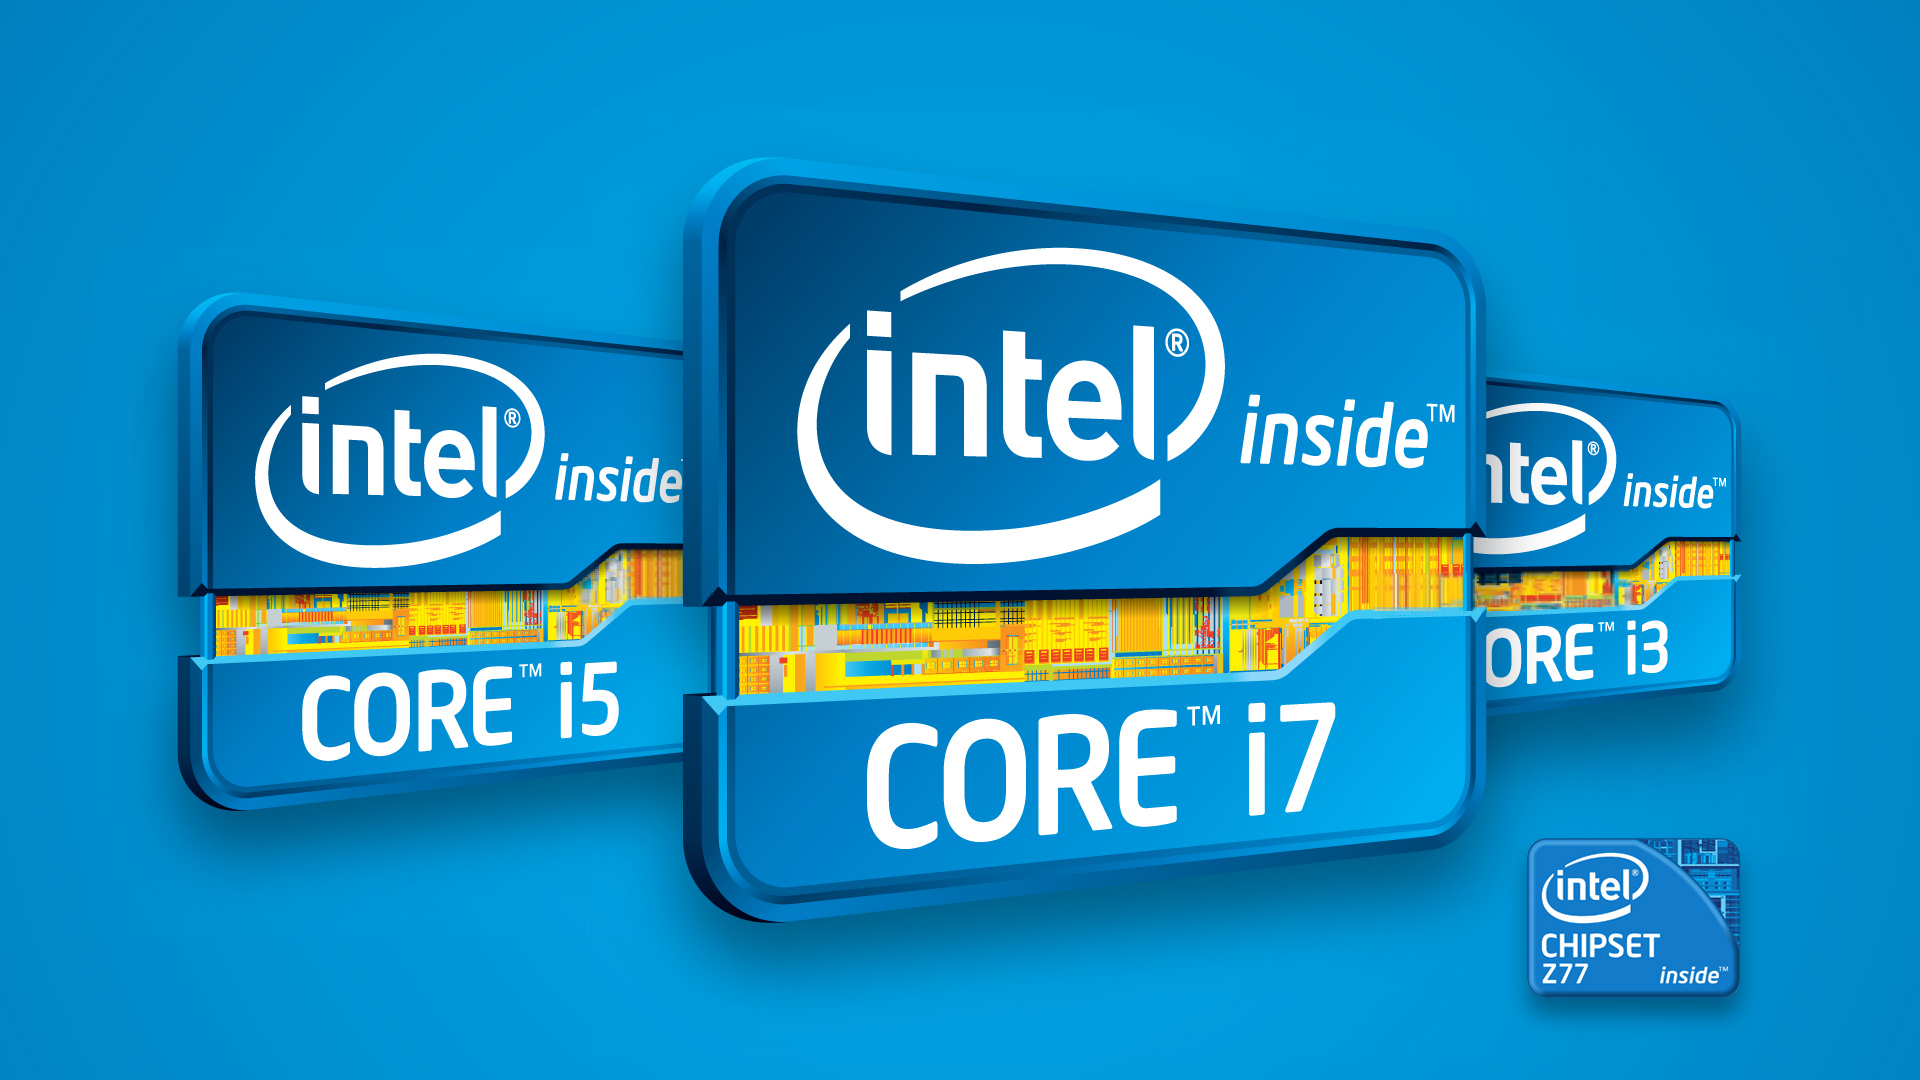 Intel Wallpapers, 03.09.14 0.76 Mb